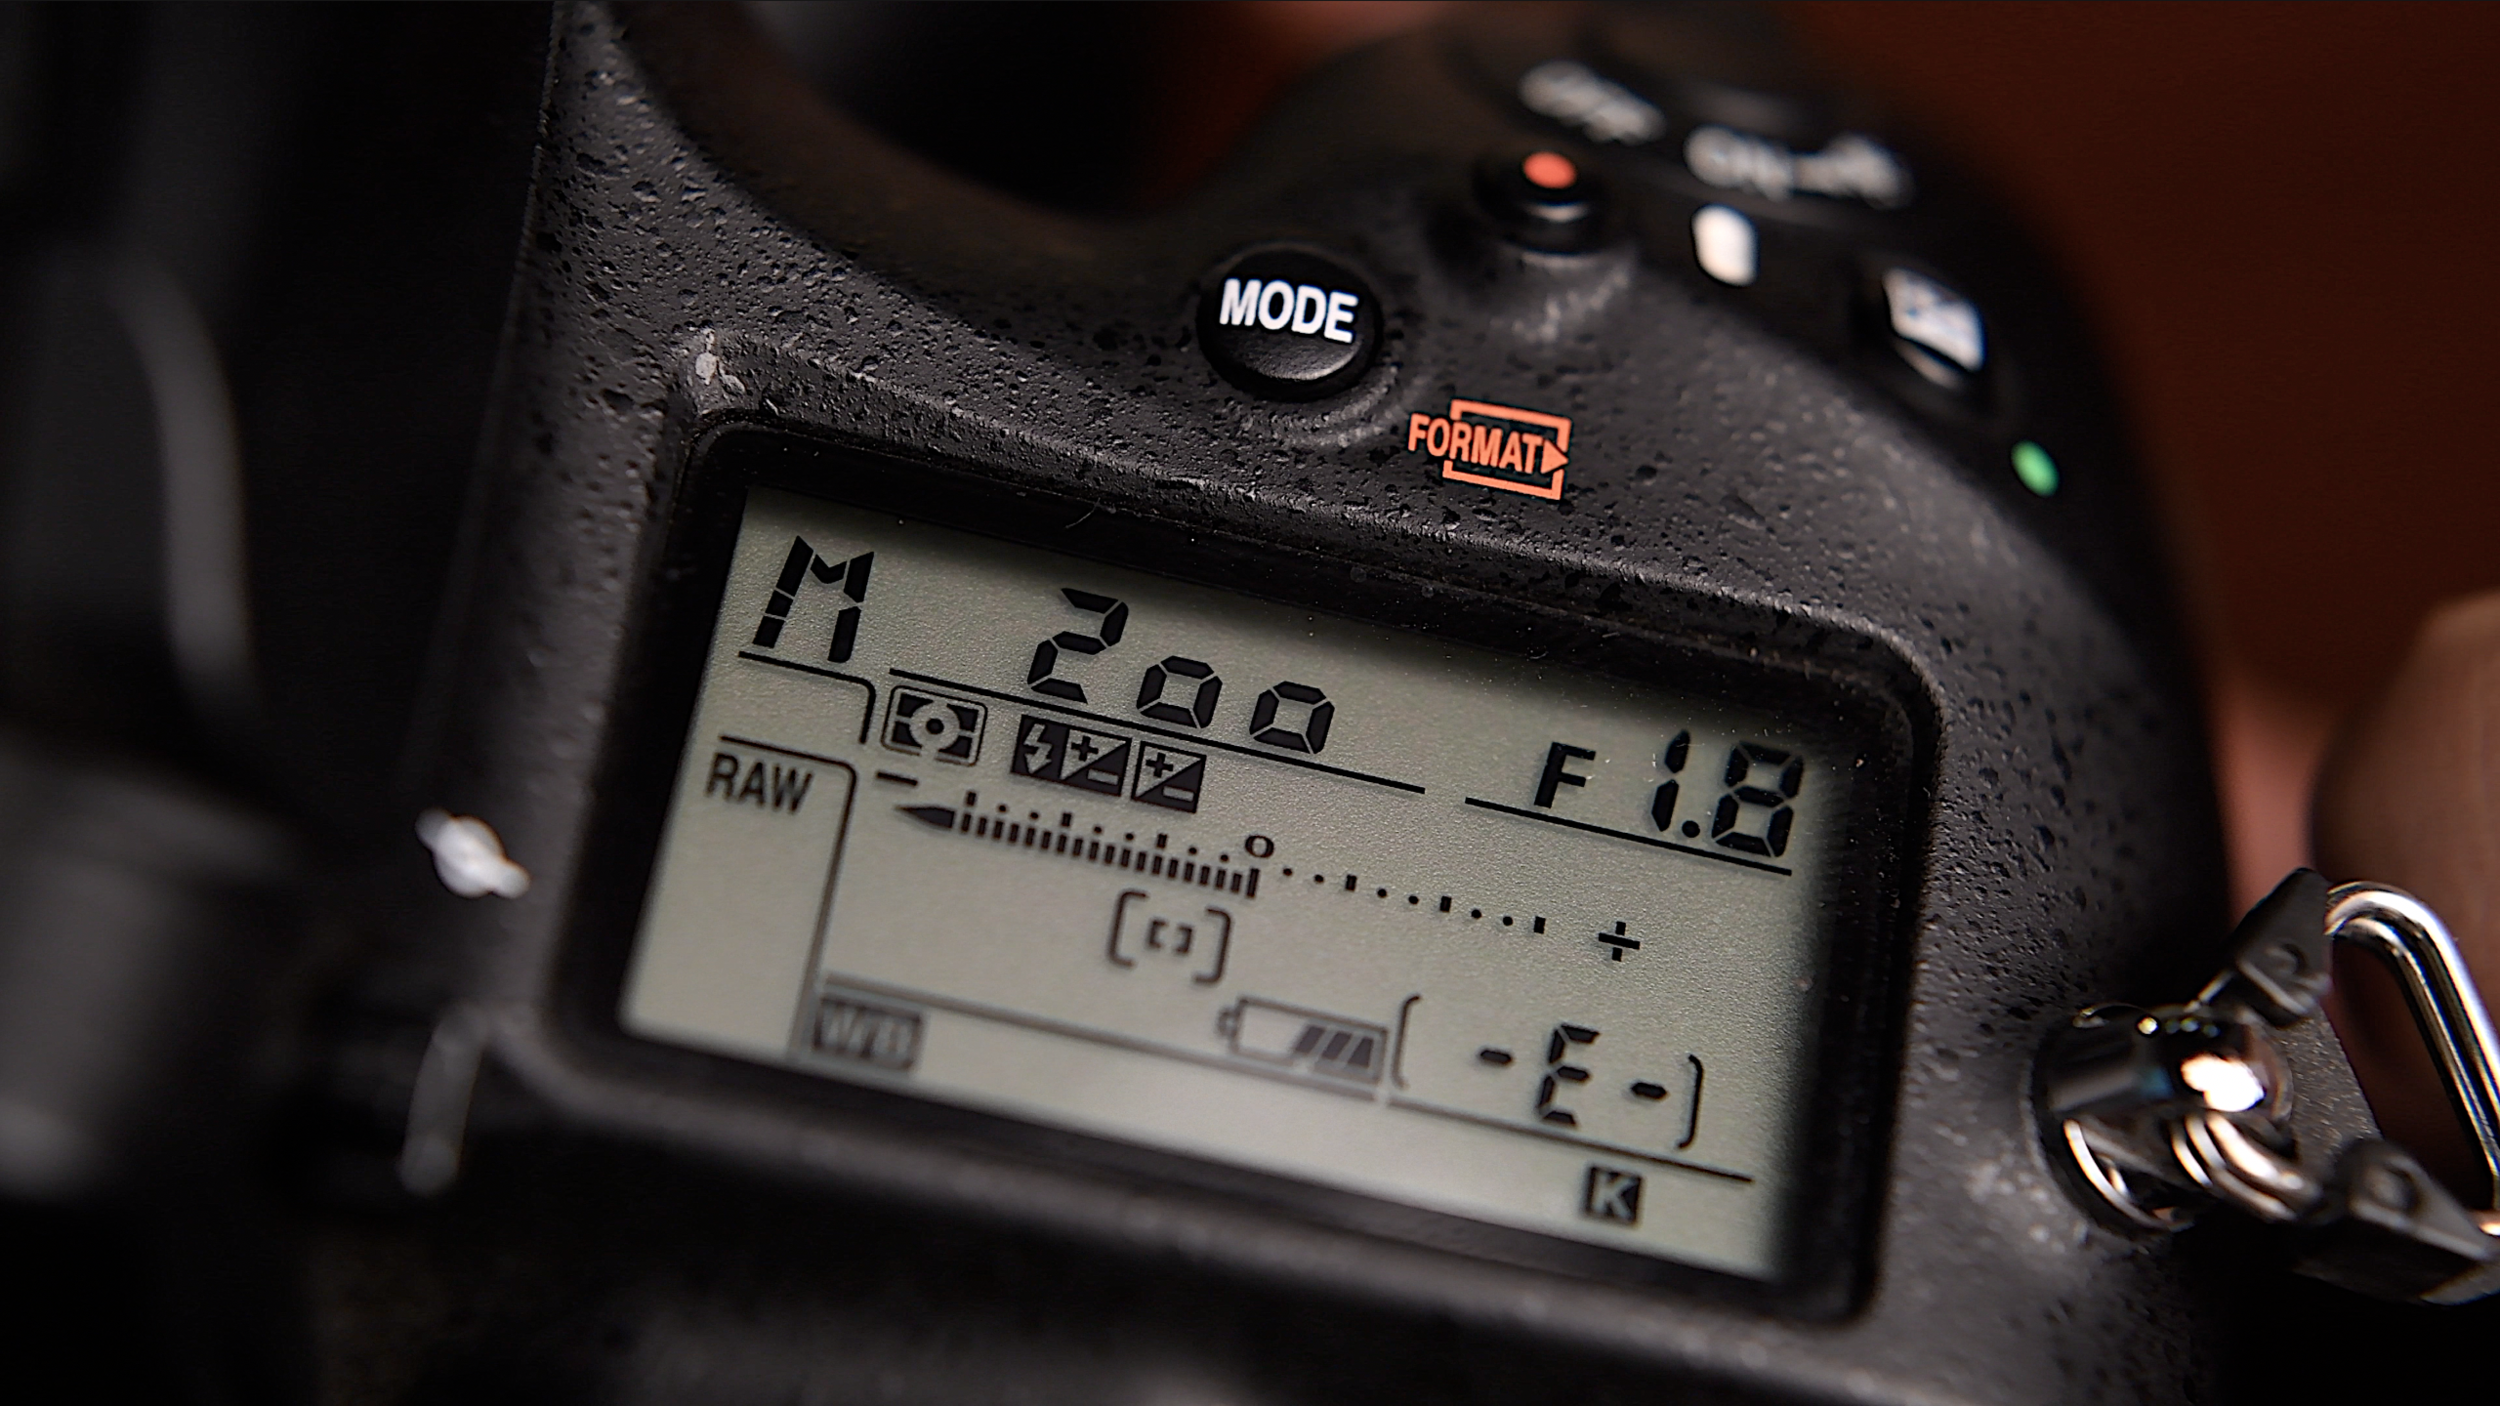 Switch your camera to manual mode and set the exposure manually to avoid varying exposures in every photograph